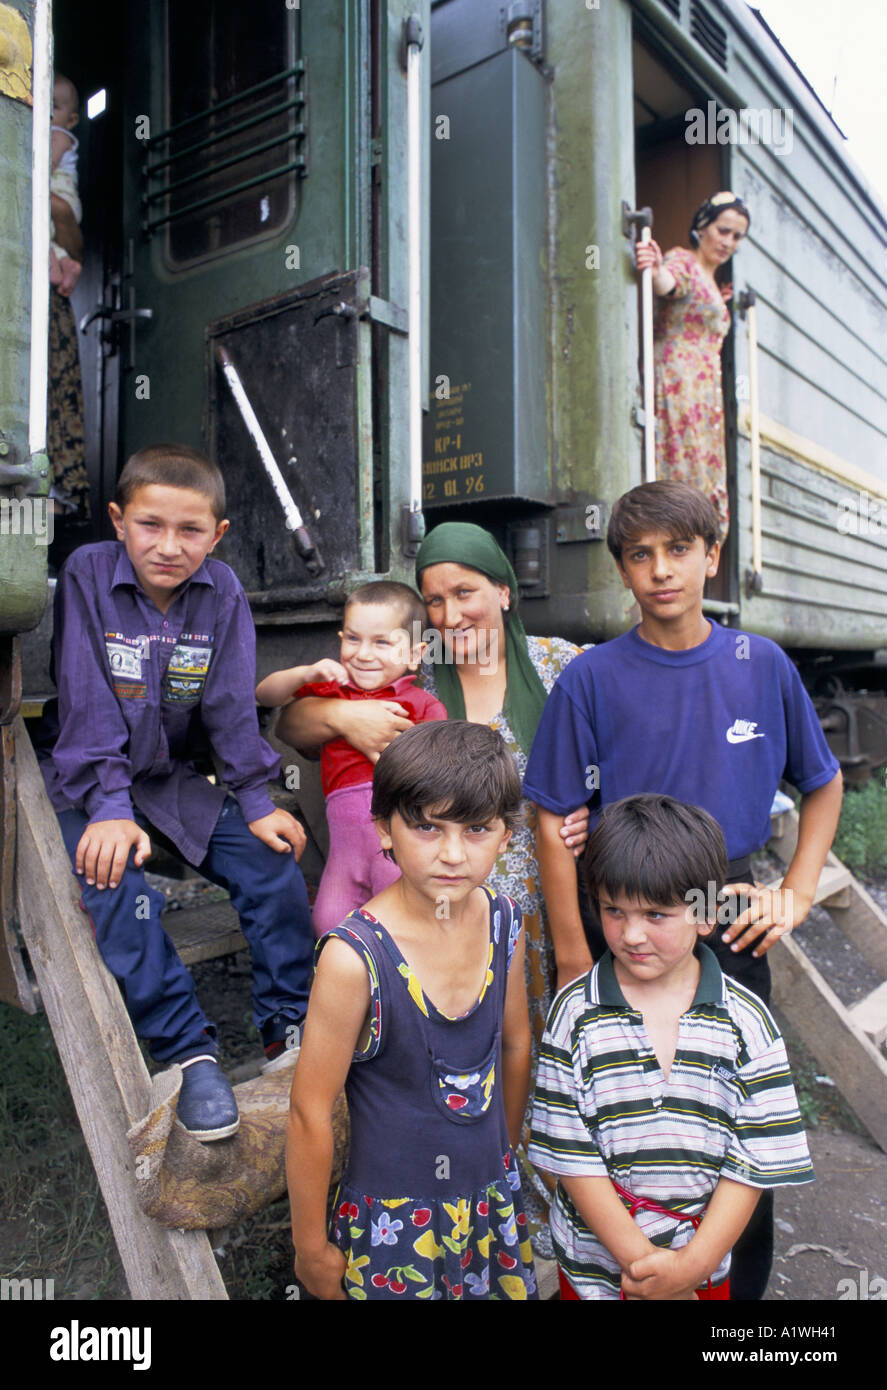 LEILA AND HER FAMILY OUTSIDE THE REFUGEE TRAIN WHERE 5000 CHECHEN REFUGEES LIVE. NASRAN INGUSHETIA 2000 - Stock Image